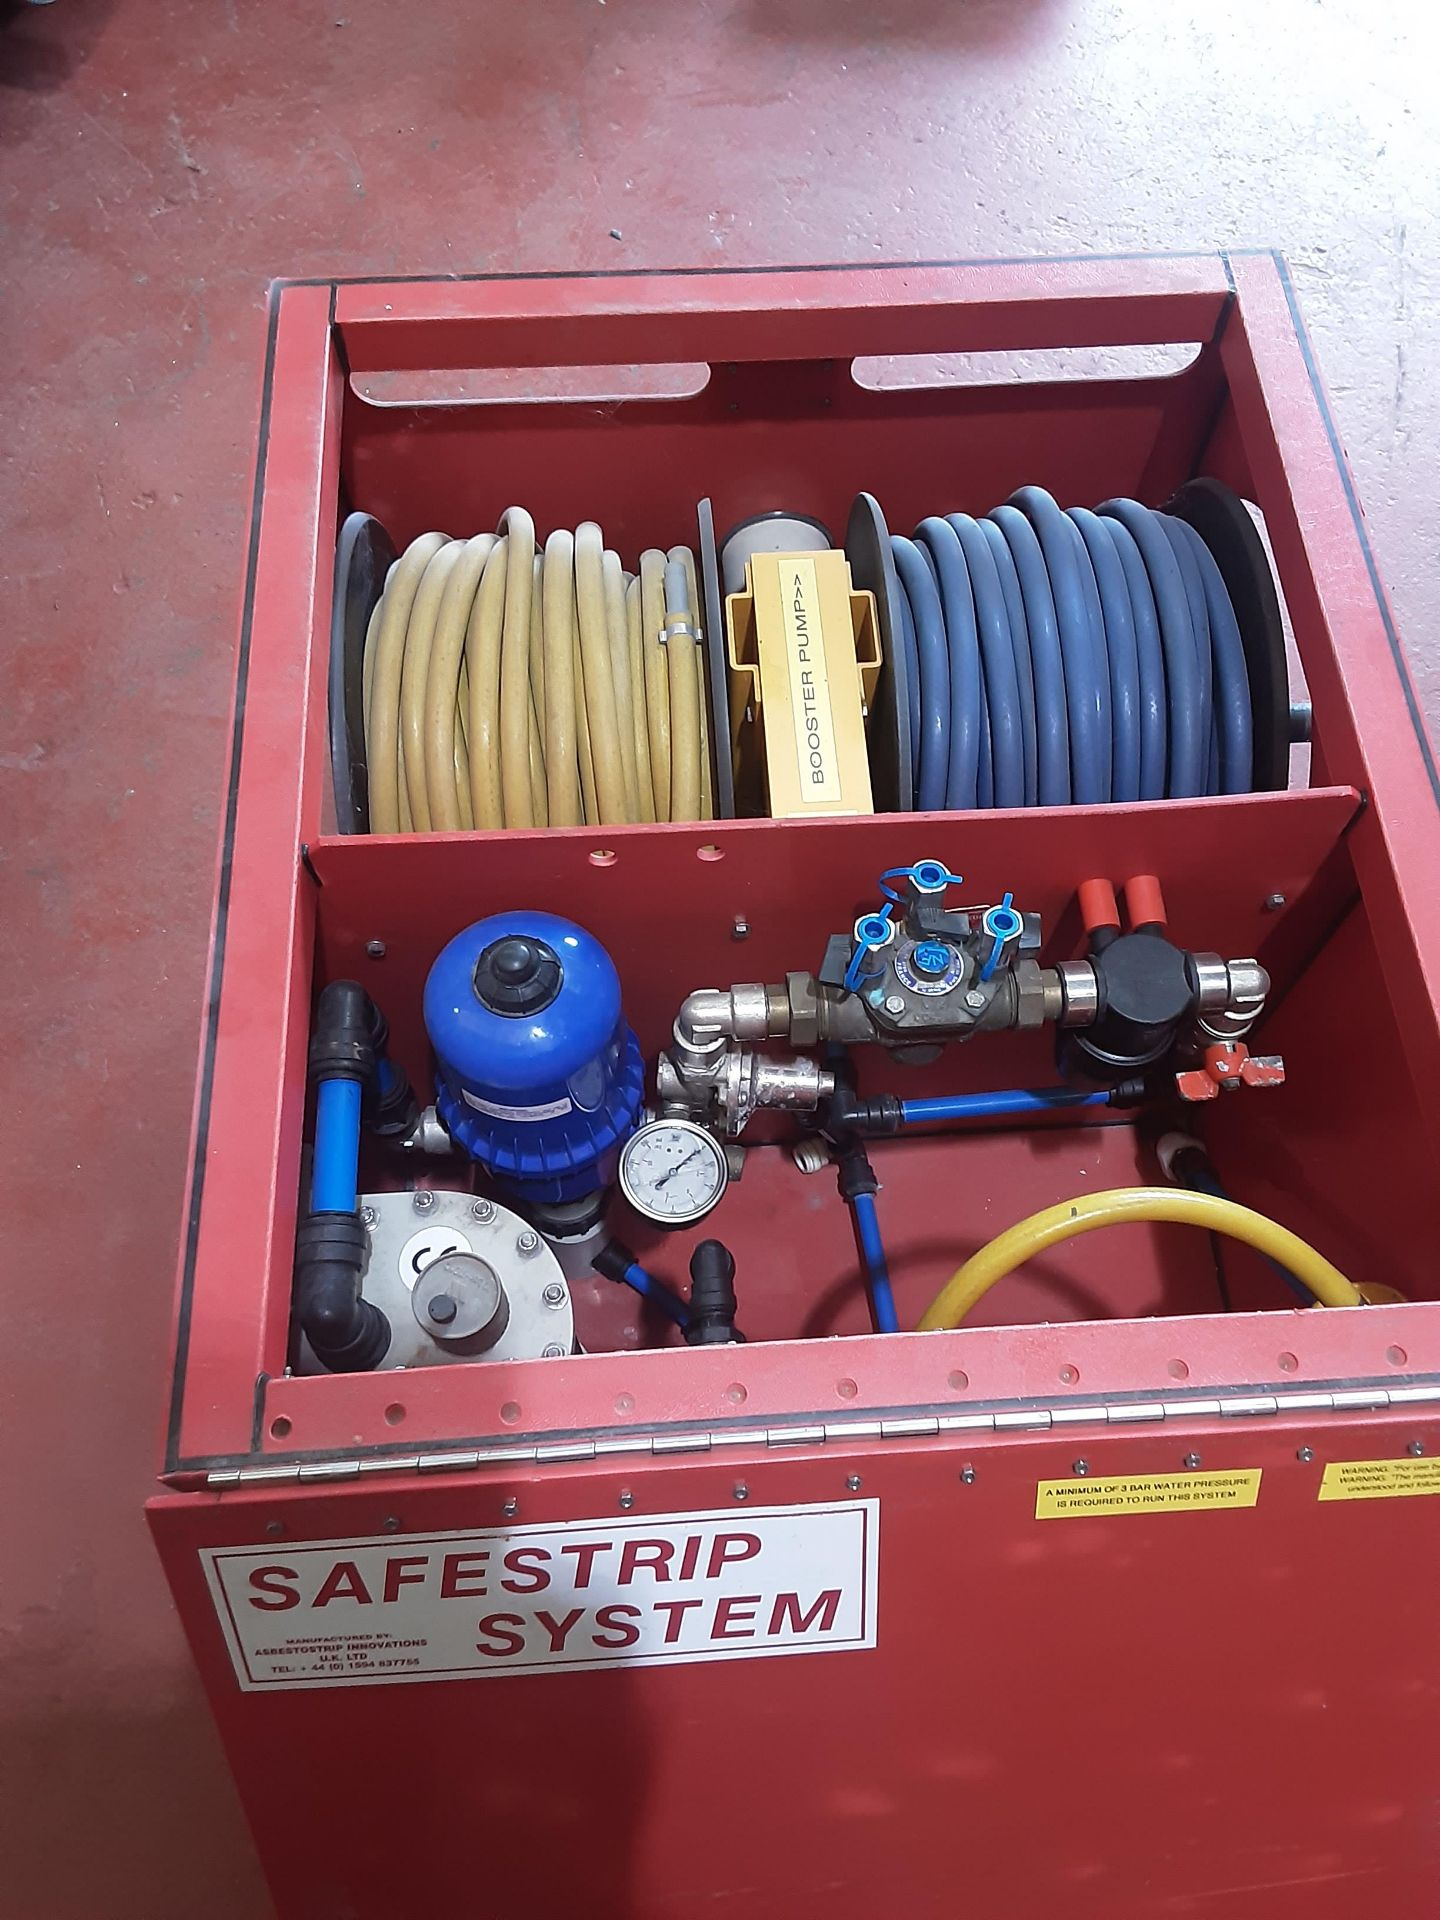 The Red Box Water Injection Machine & Accessories, Serial No. 6062, (2014) - Image 10 of 10